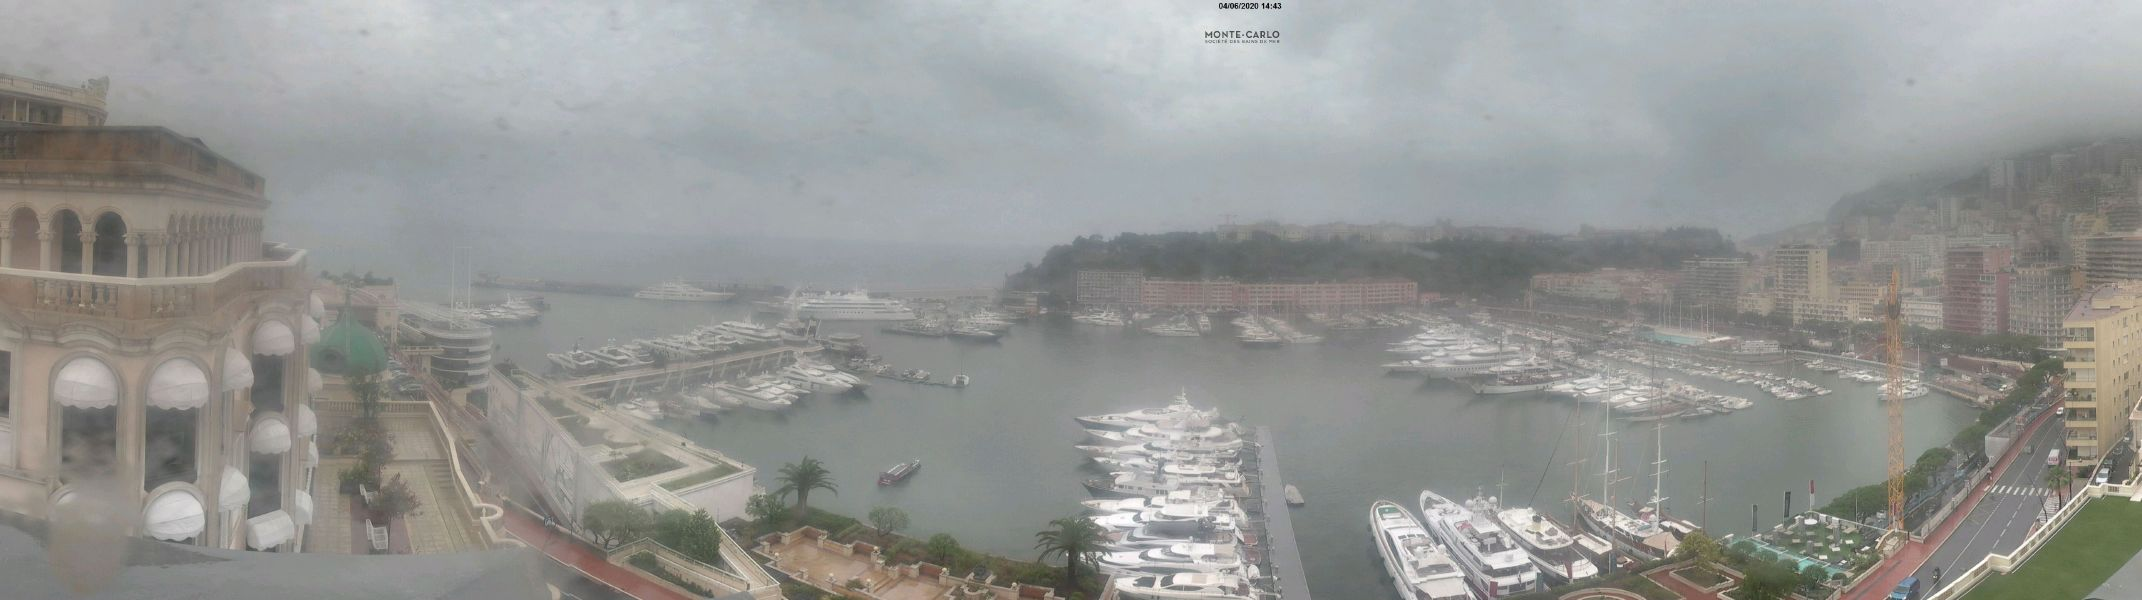 Webcam Monaco Port Hercule